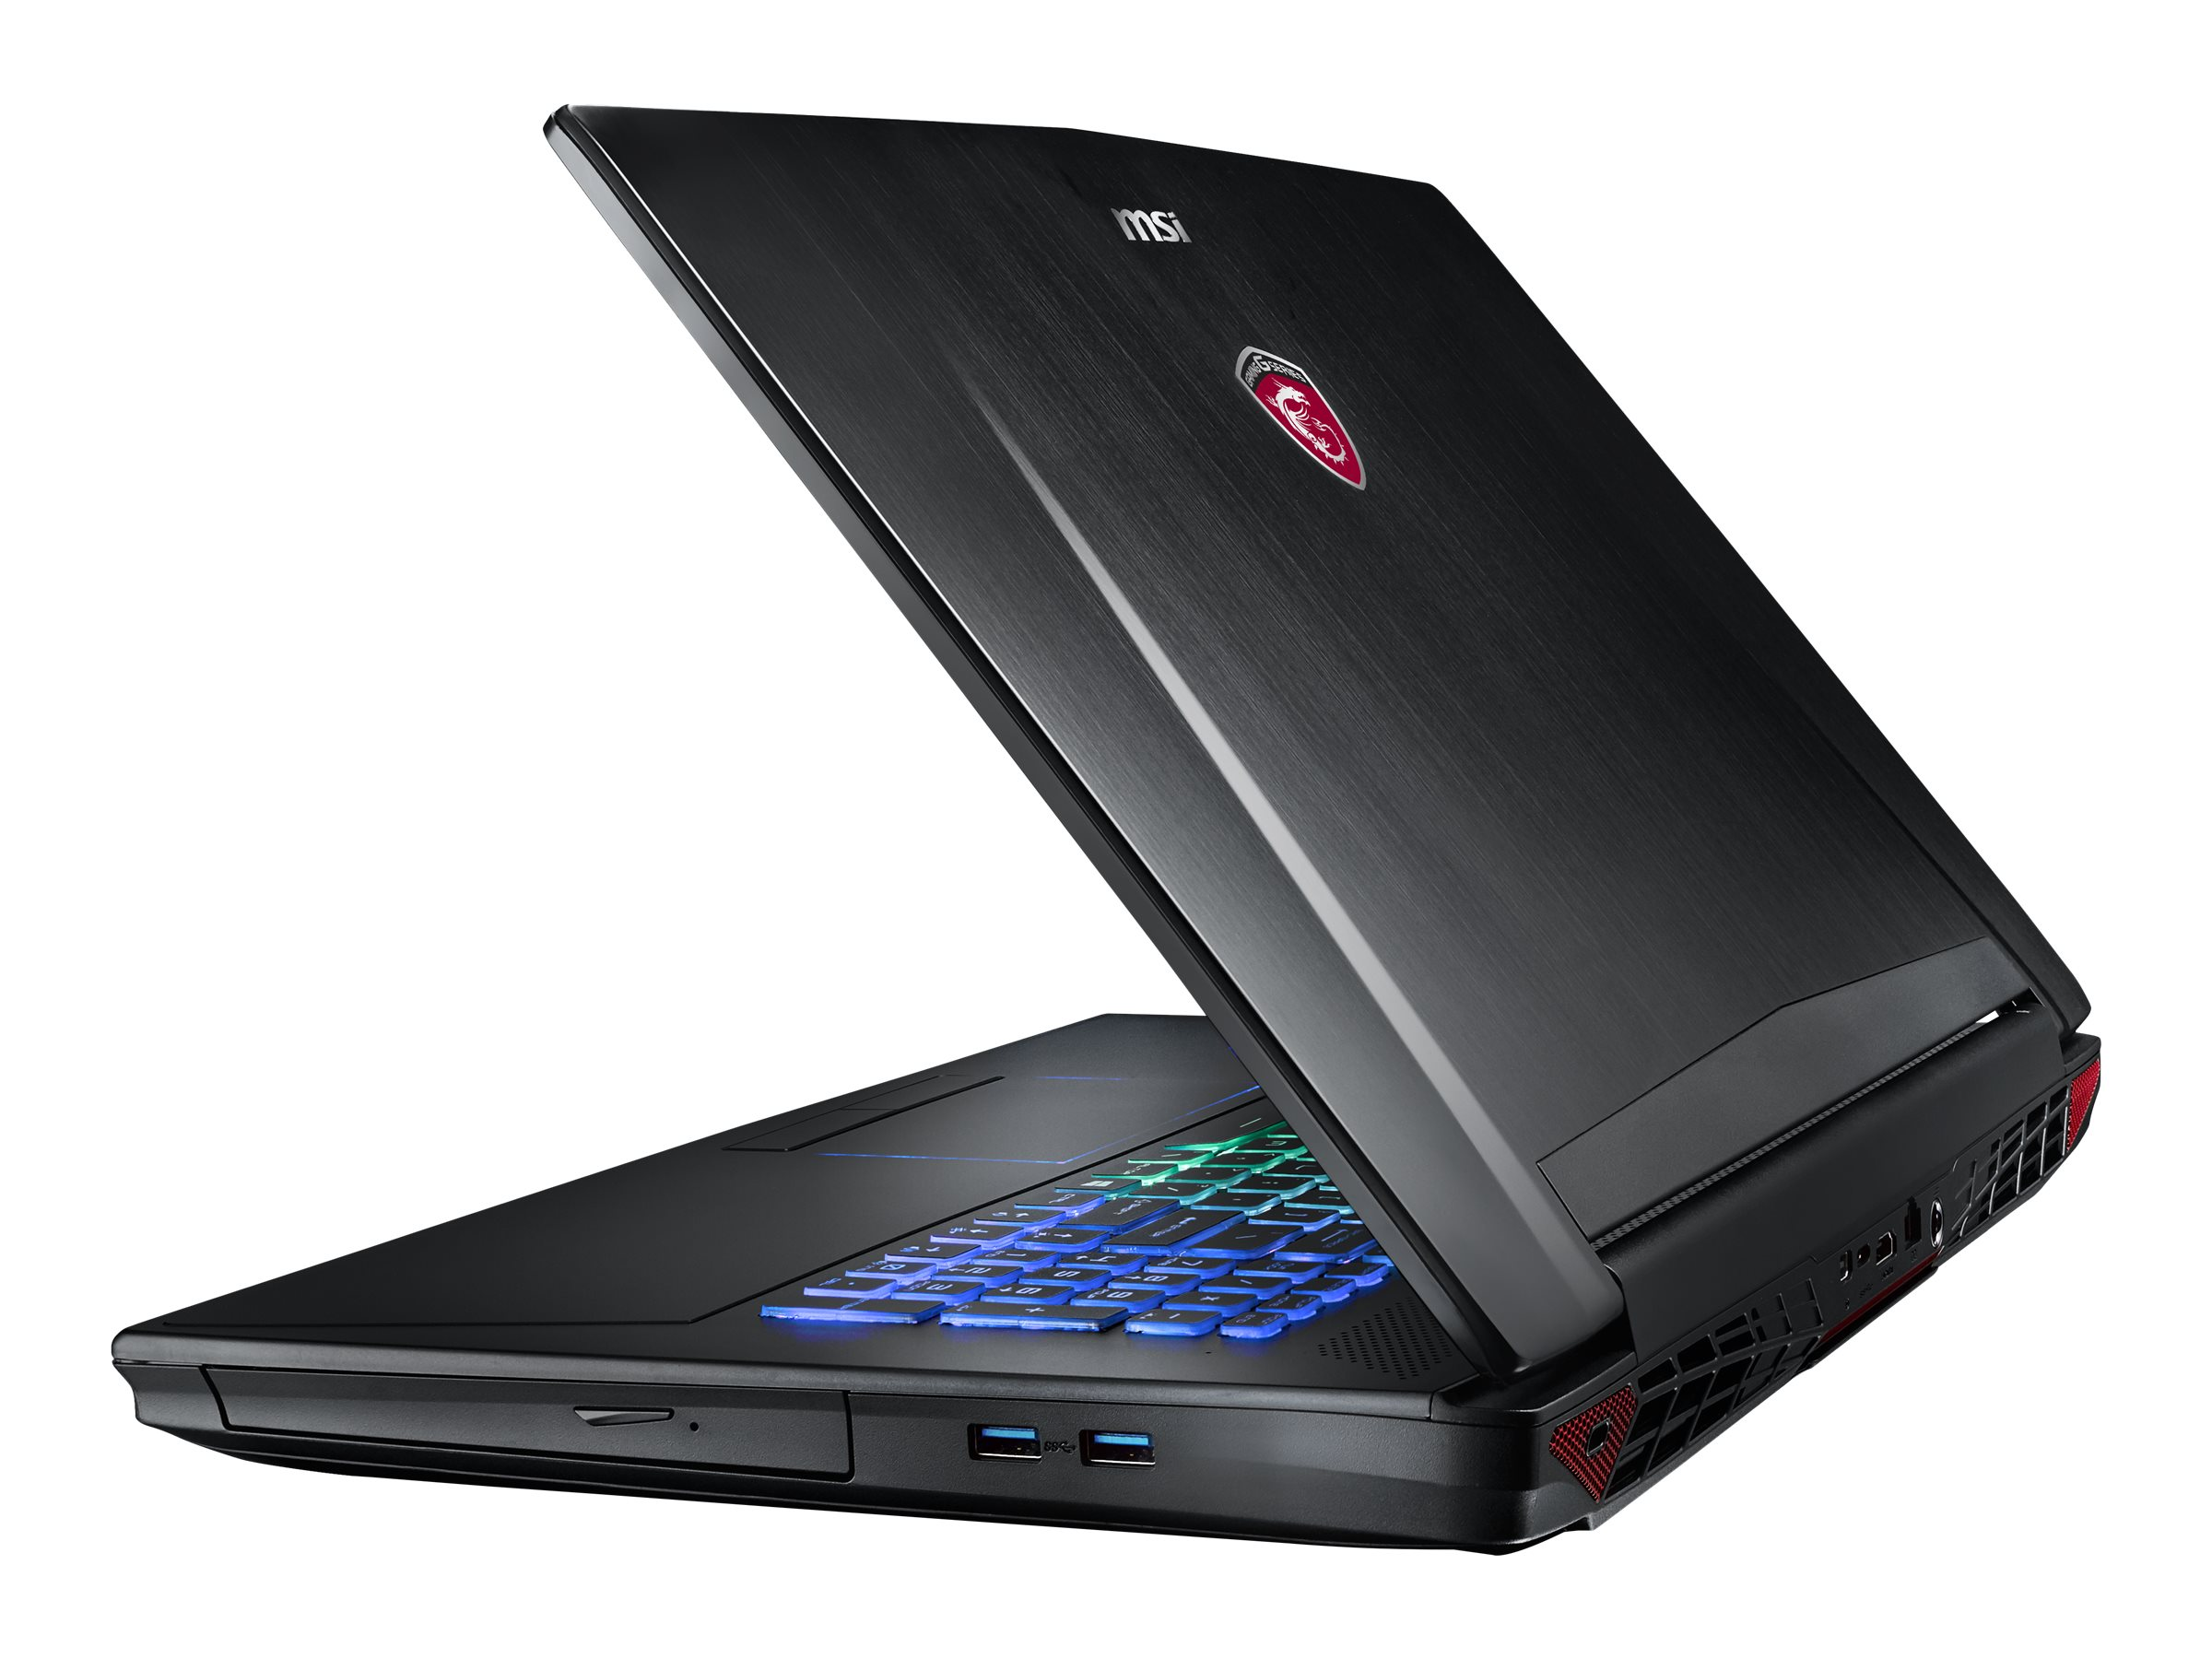 MSI Computer GT72VR286 Image 7